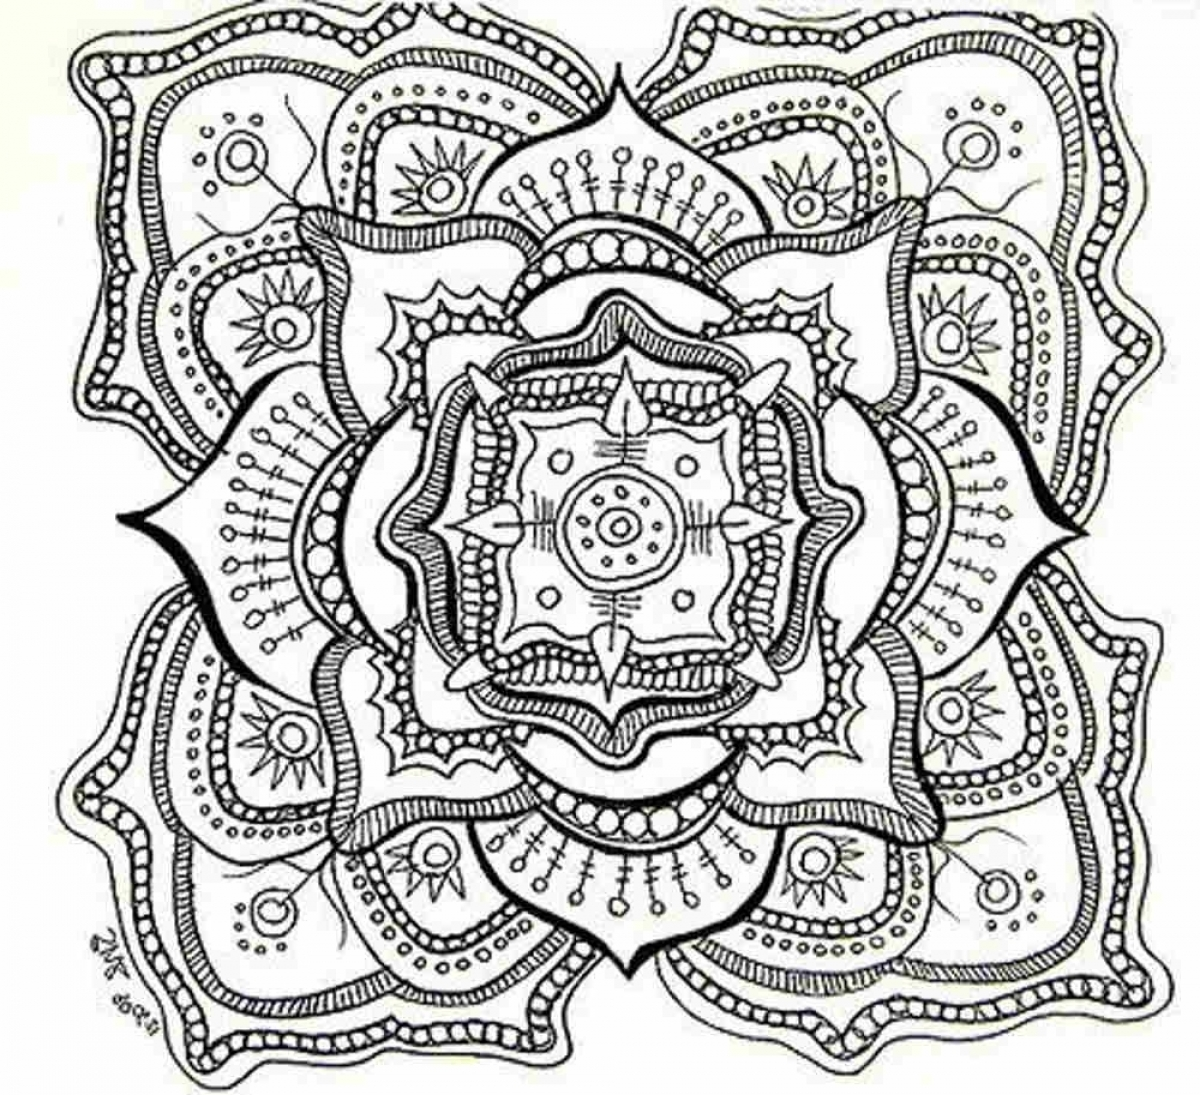 free trippy coloring pages to print for adults gh6s4 - Trippy Coloring Books